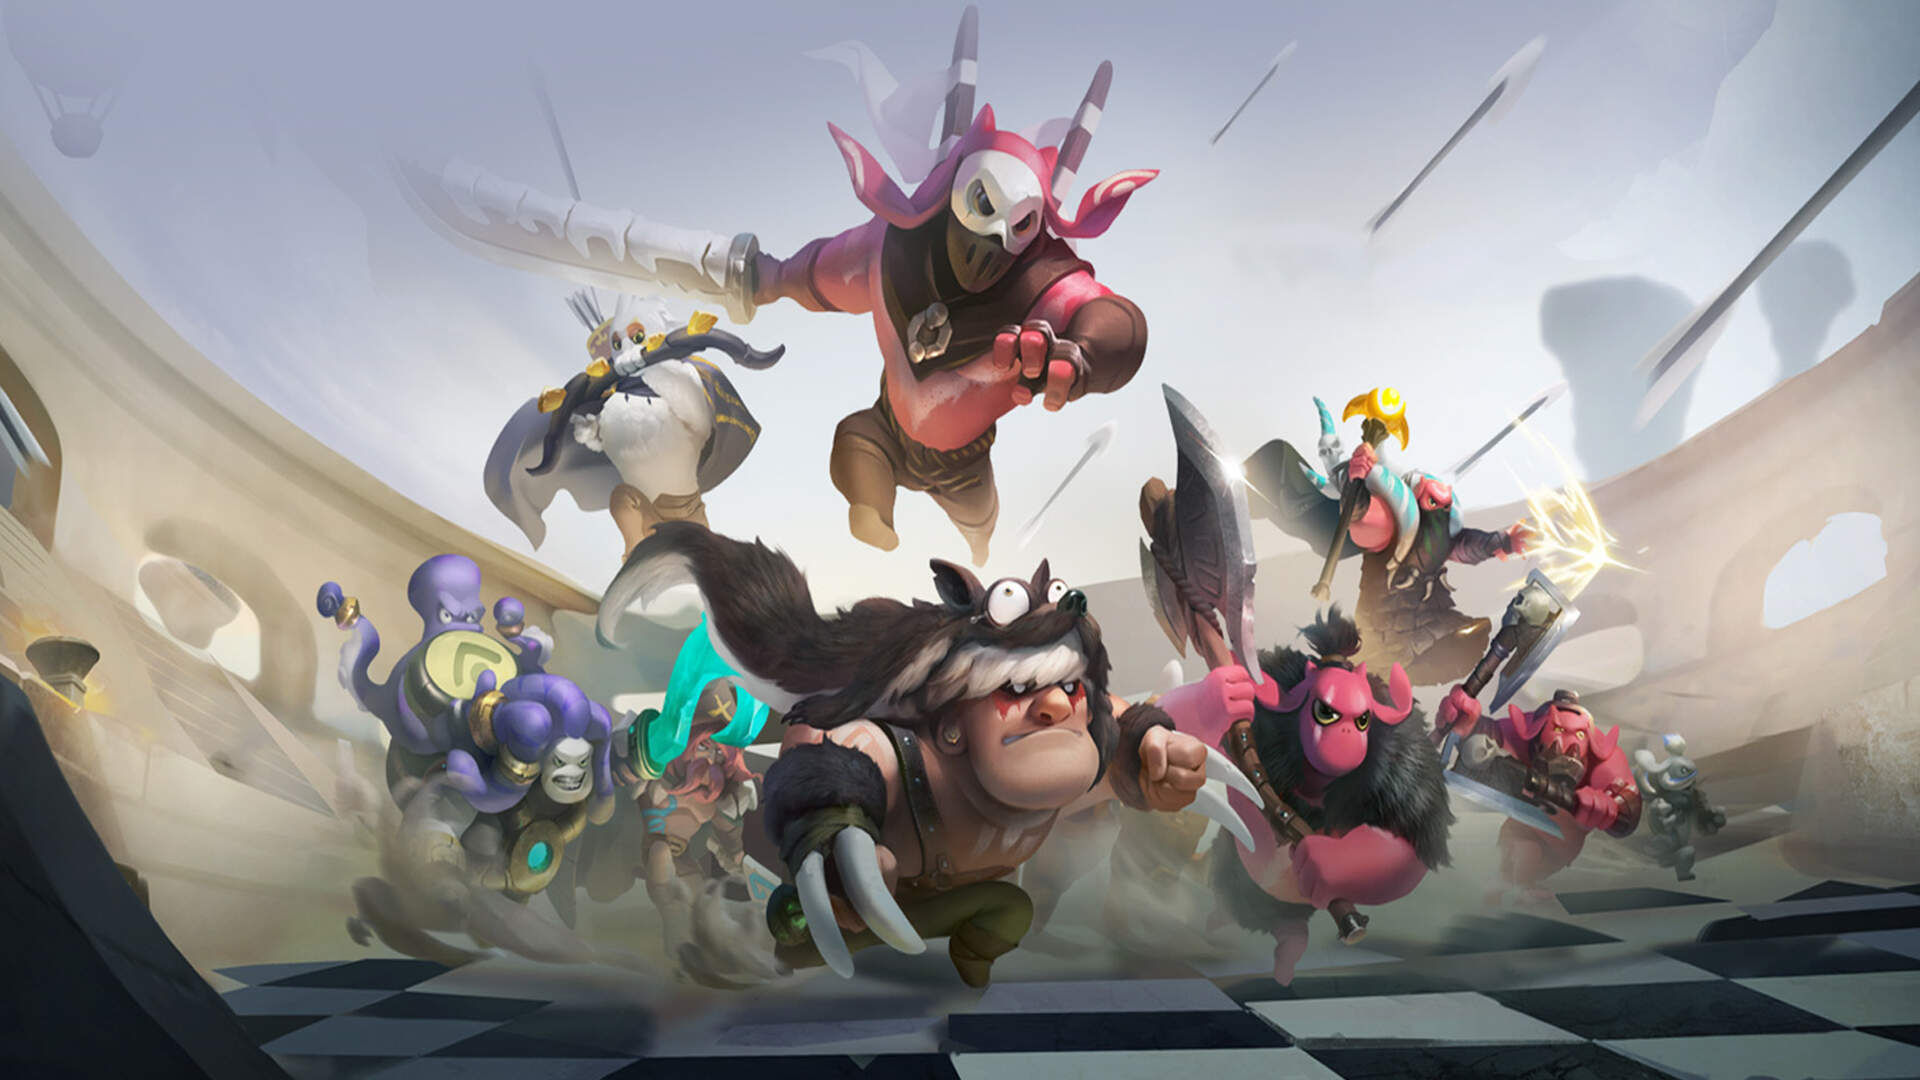 Auto Chess is the Latest Gaming Industry Gold Rush, Like MOBA and Battle Royale Before It